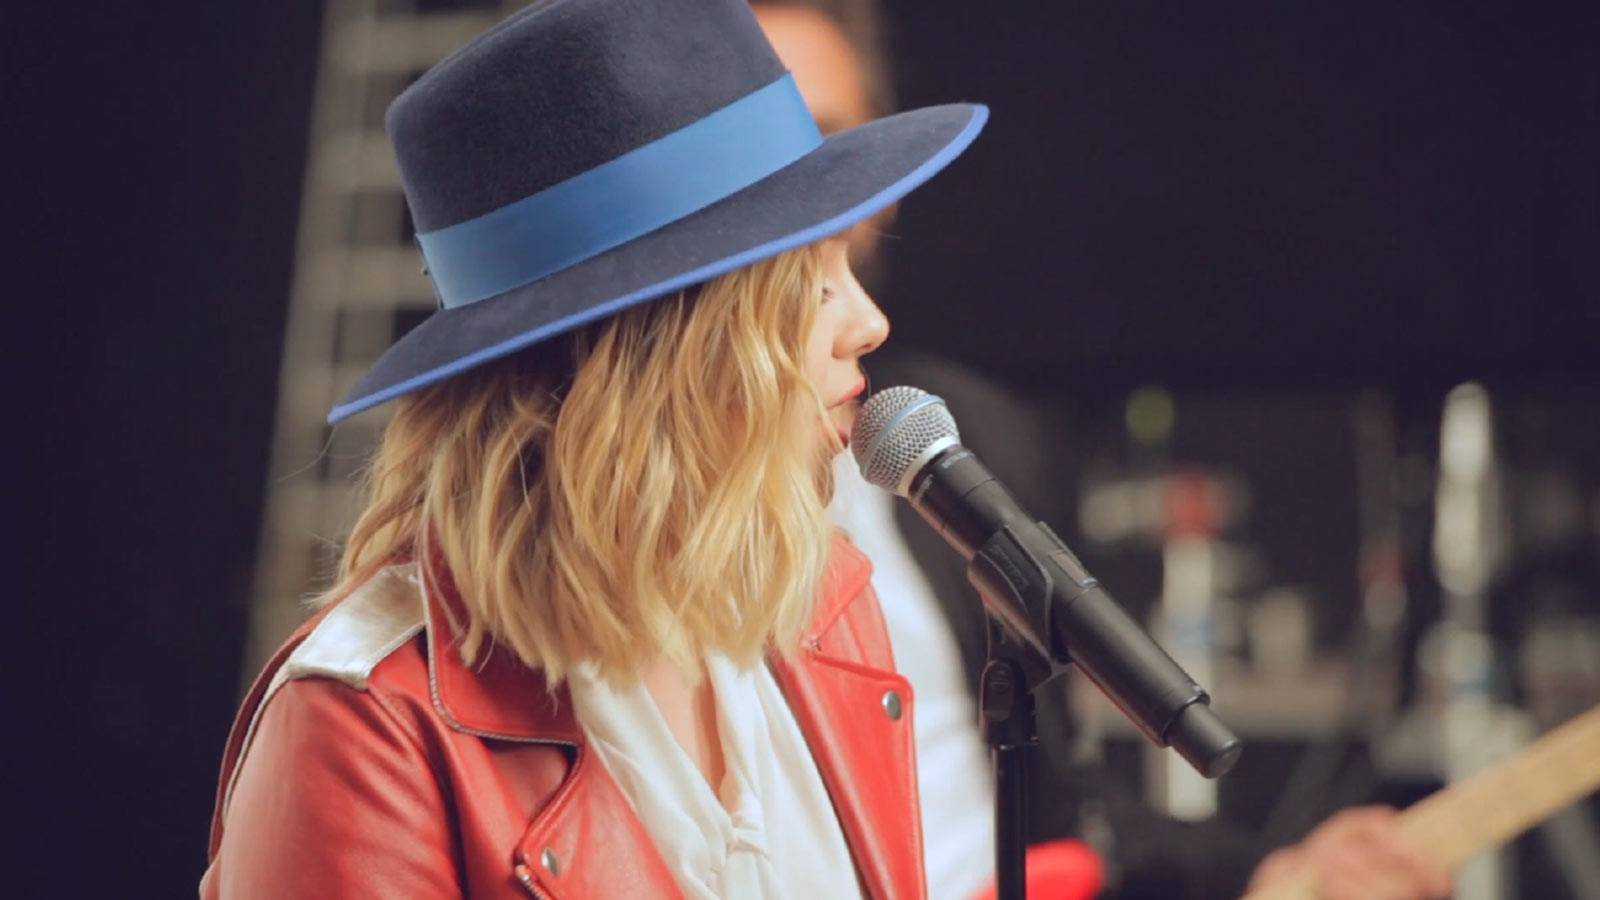 maybelline-making-of-louane-colorshow-video-16x9